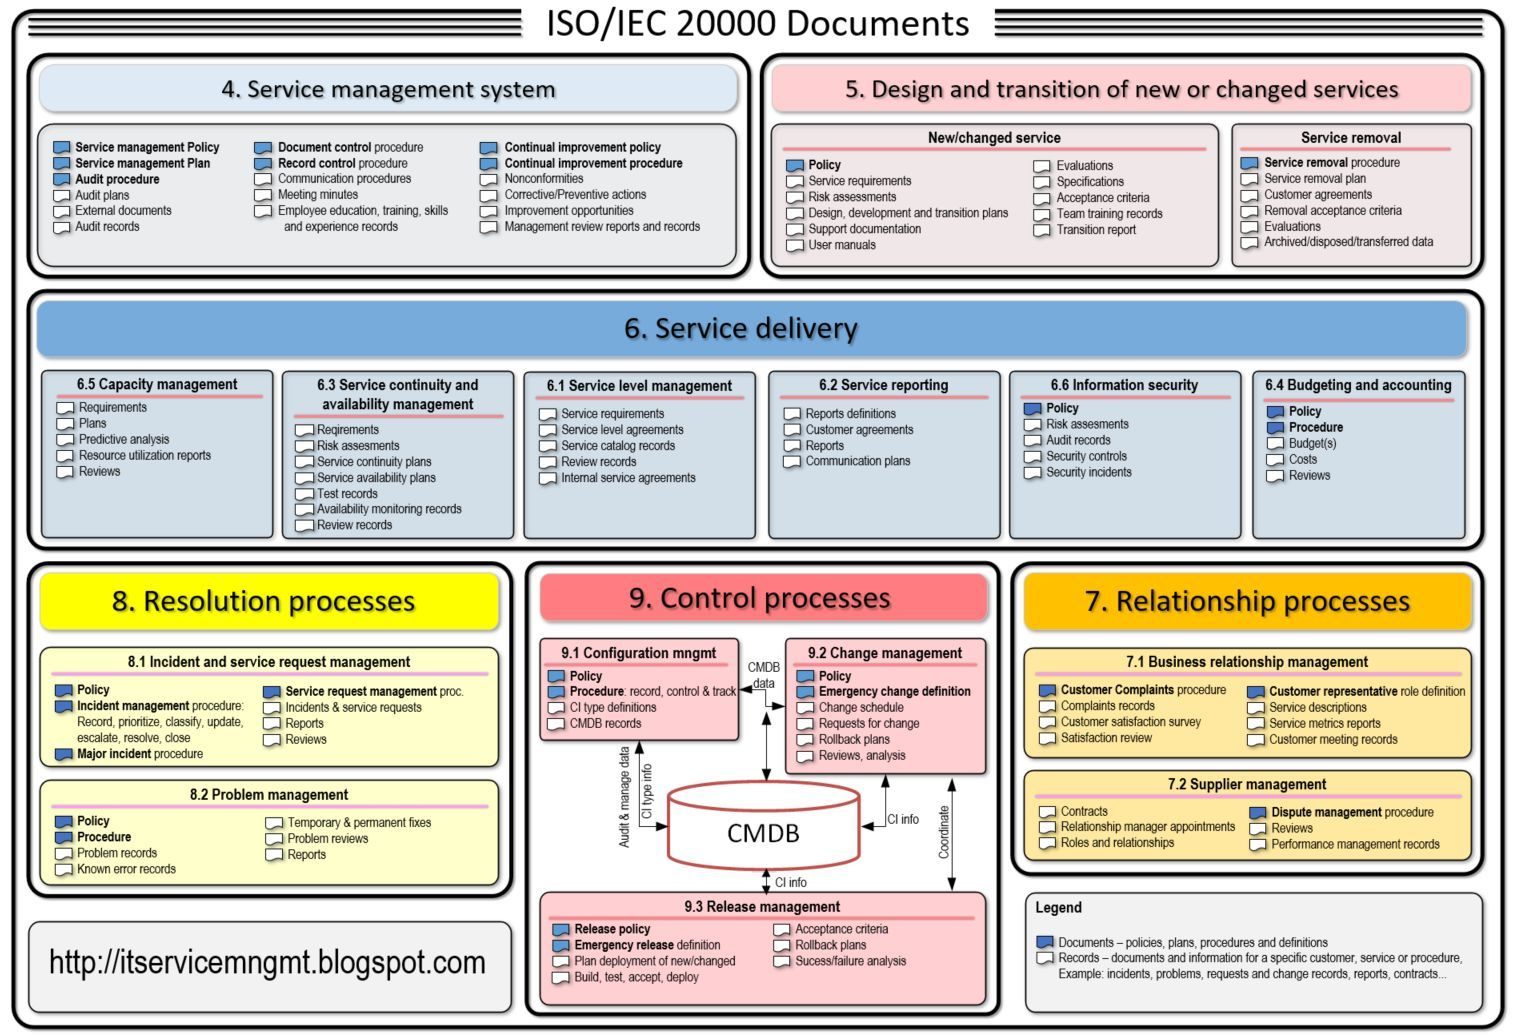 Basic It Service Management Knowledge Points For New People In Itil And Iso Iec 20000 Information Technology Services Management Change Management